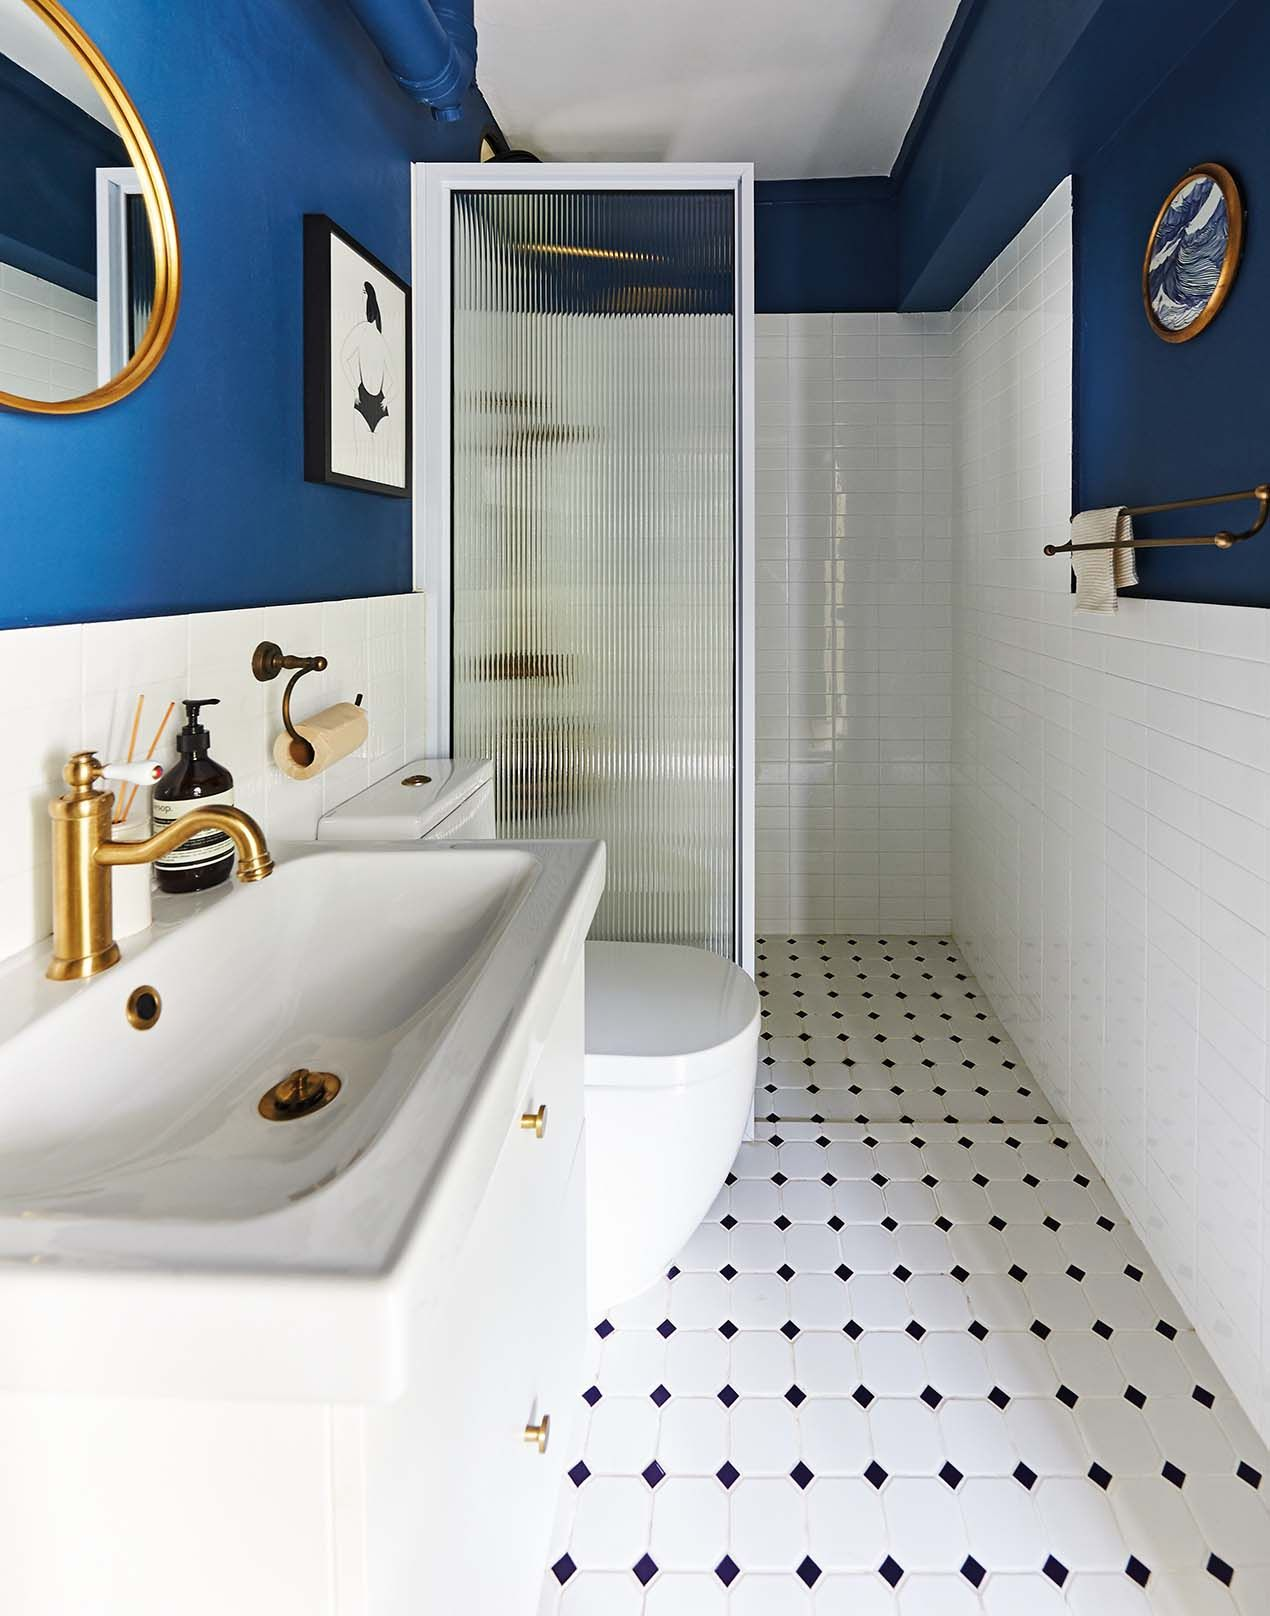 Bedroom Hdb Furniture: Pin On Bathrooms To Die For